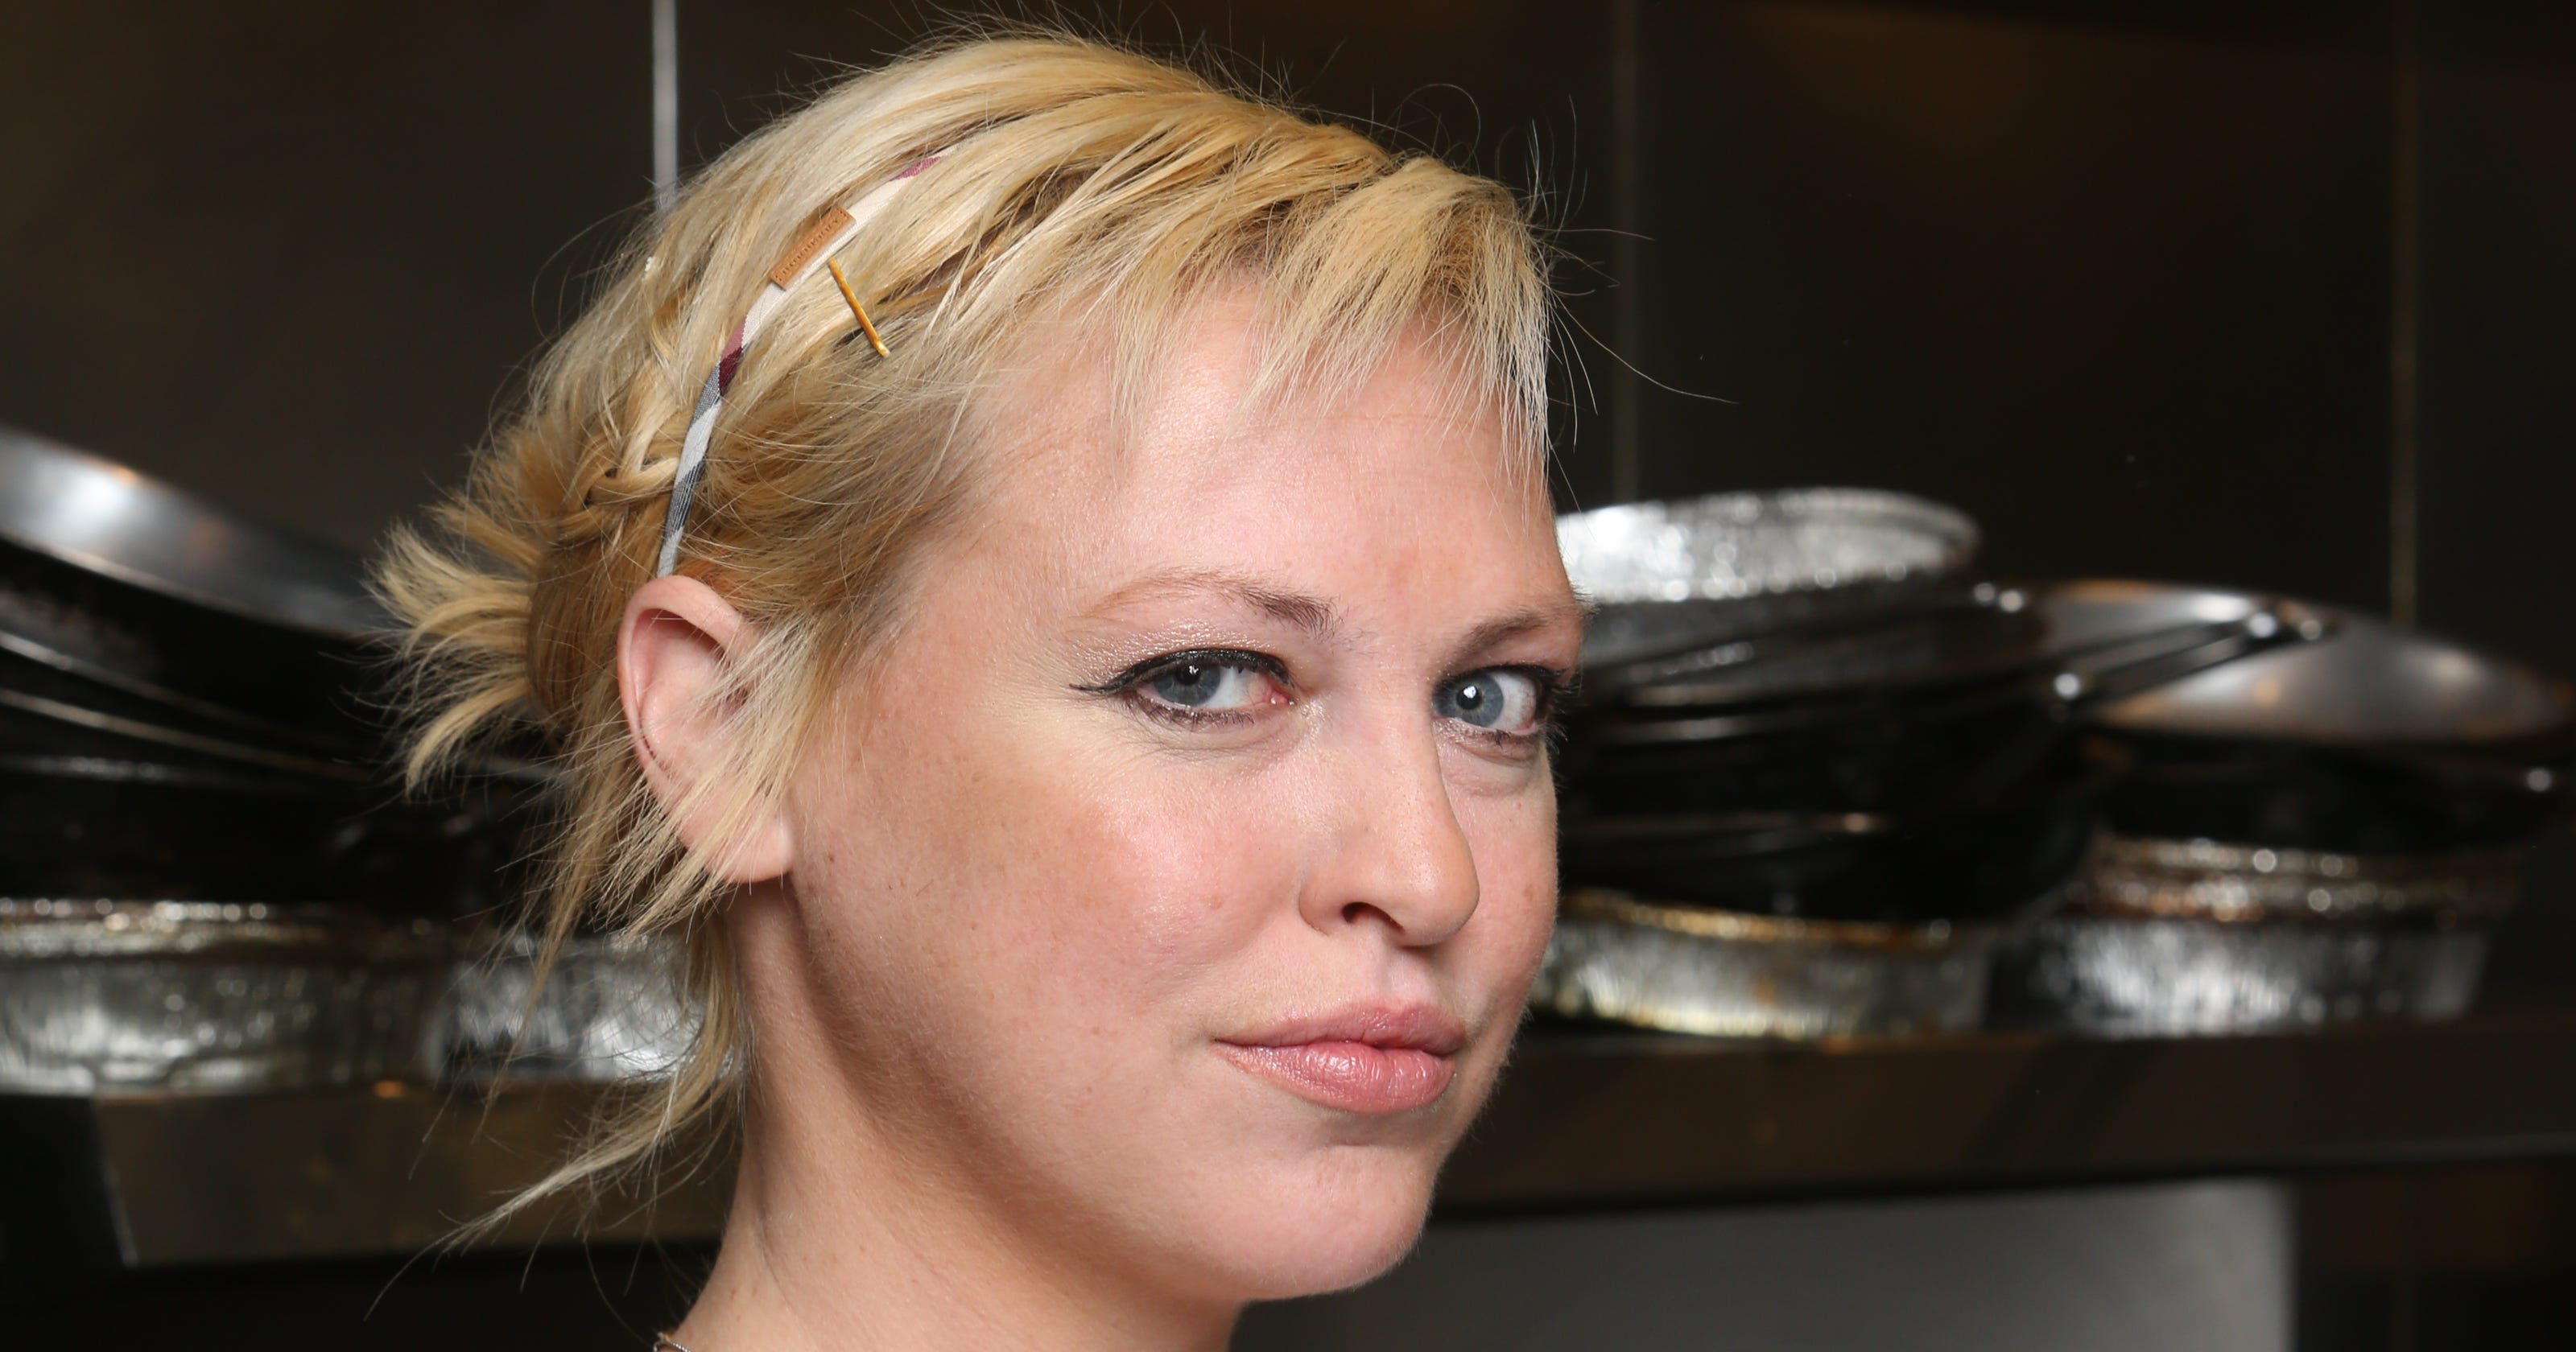 Jessica Vogel, former 'Hell's Kitchen' contestant, dies at